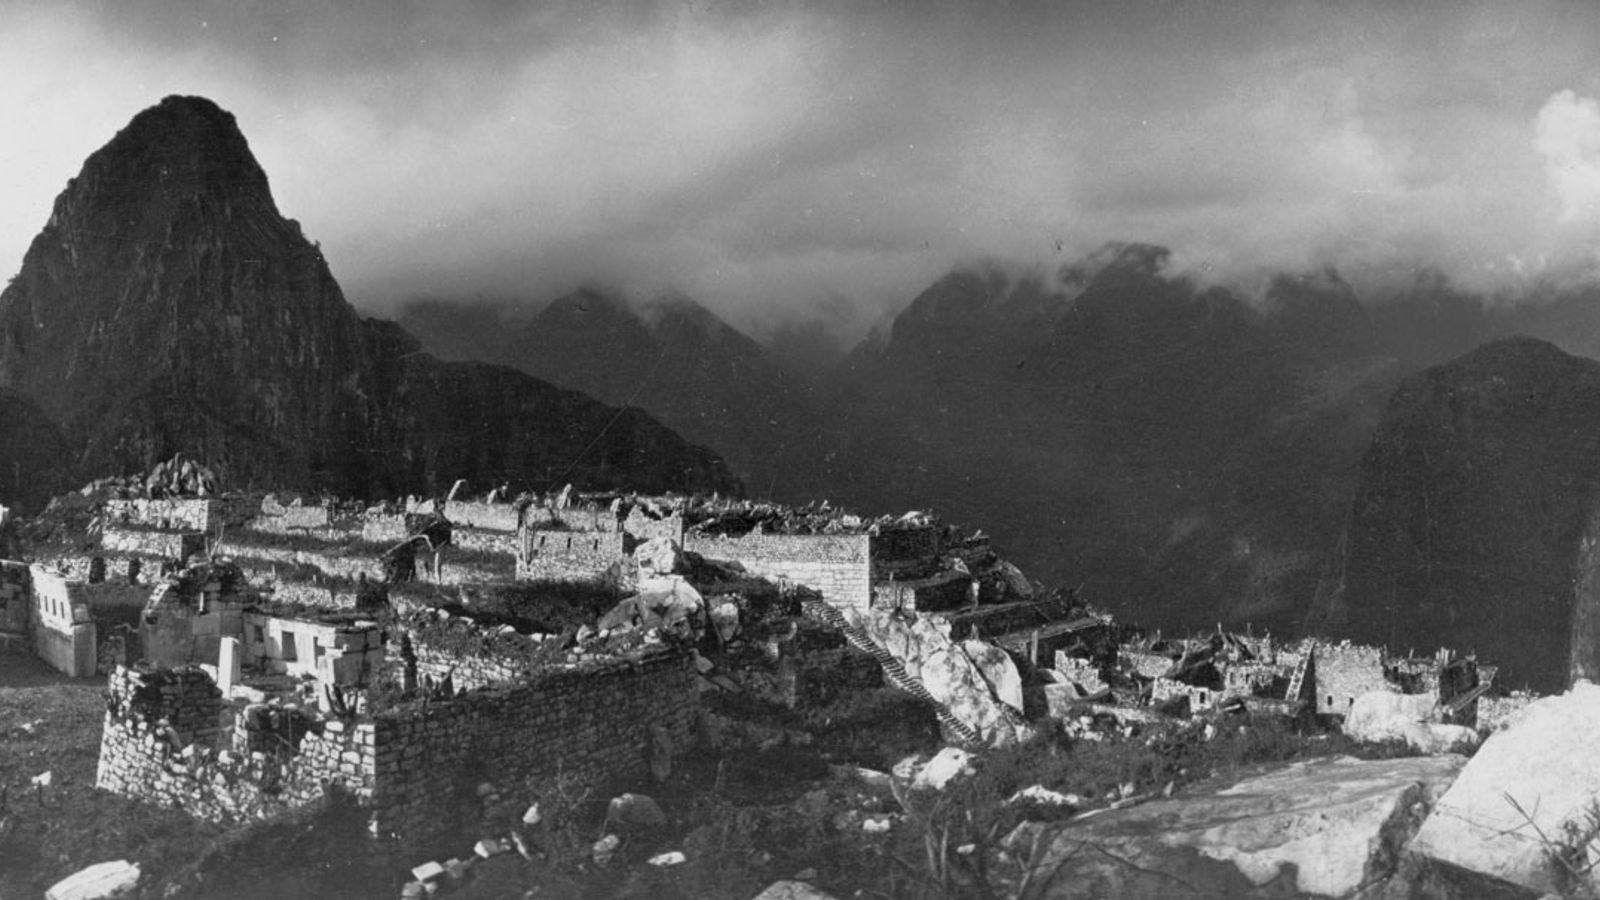 A panoramic view of Machu Picchu from an elevated distance.